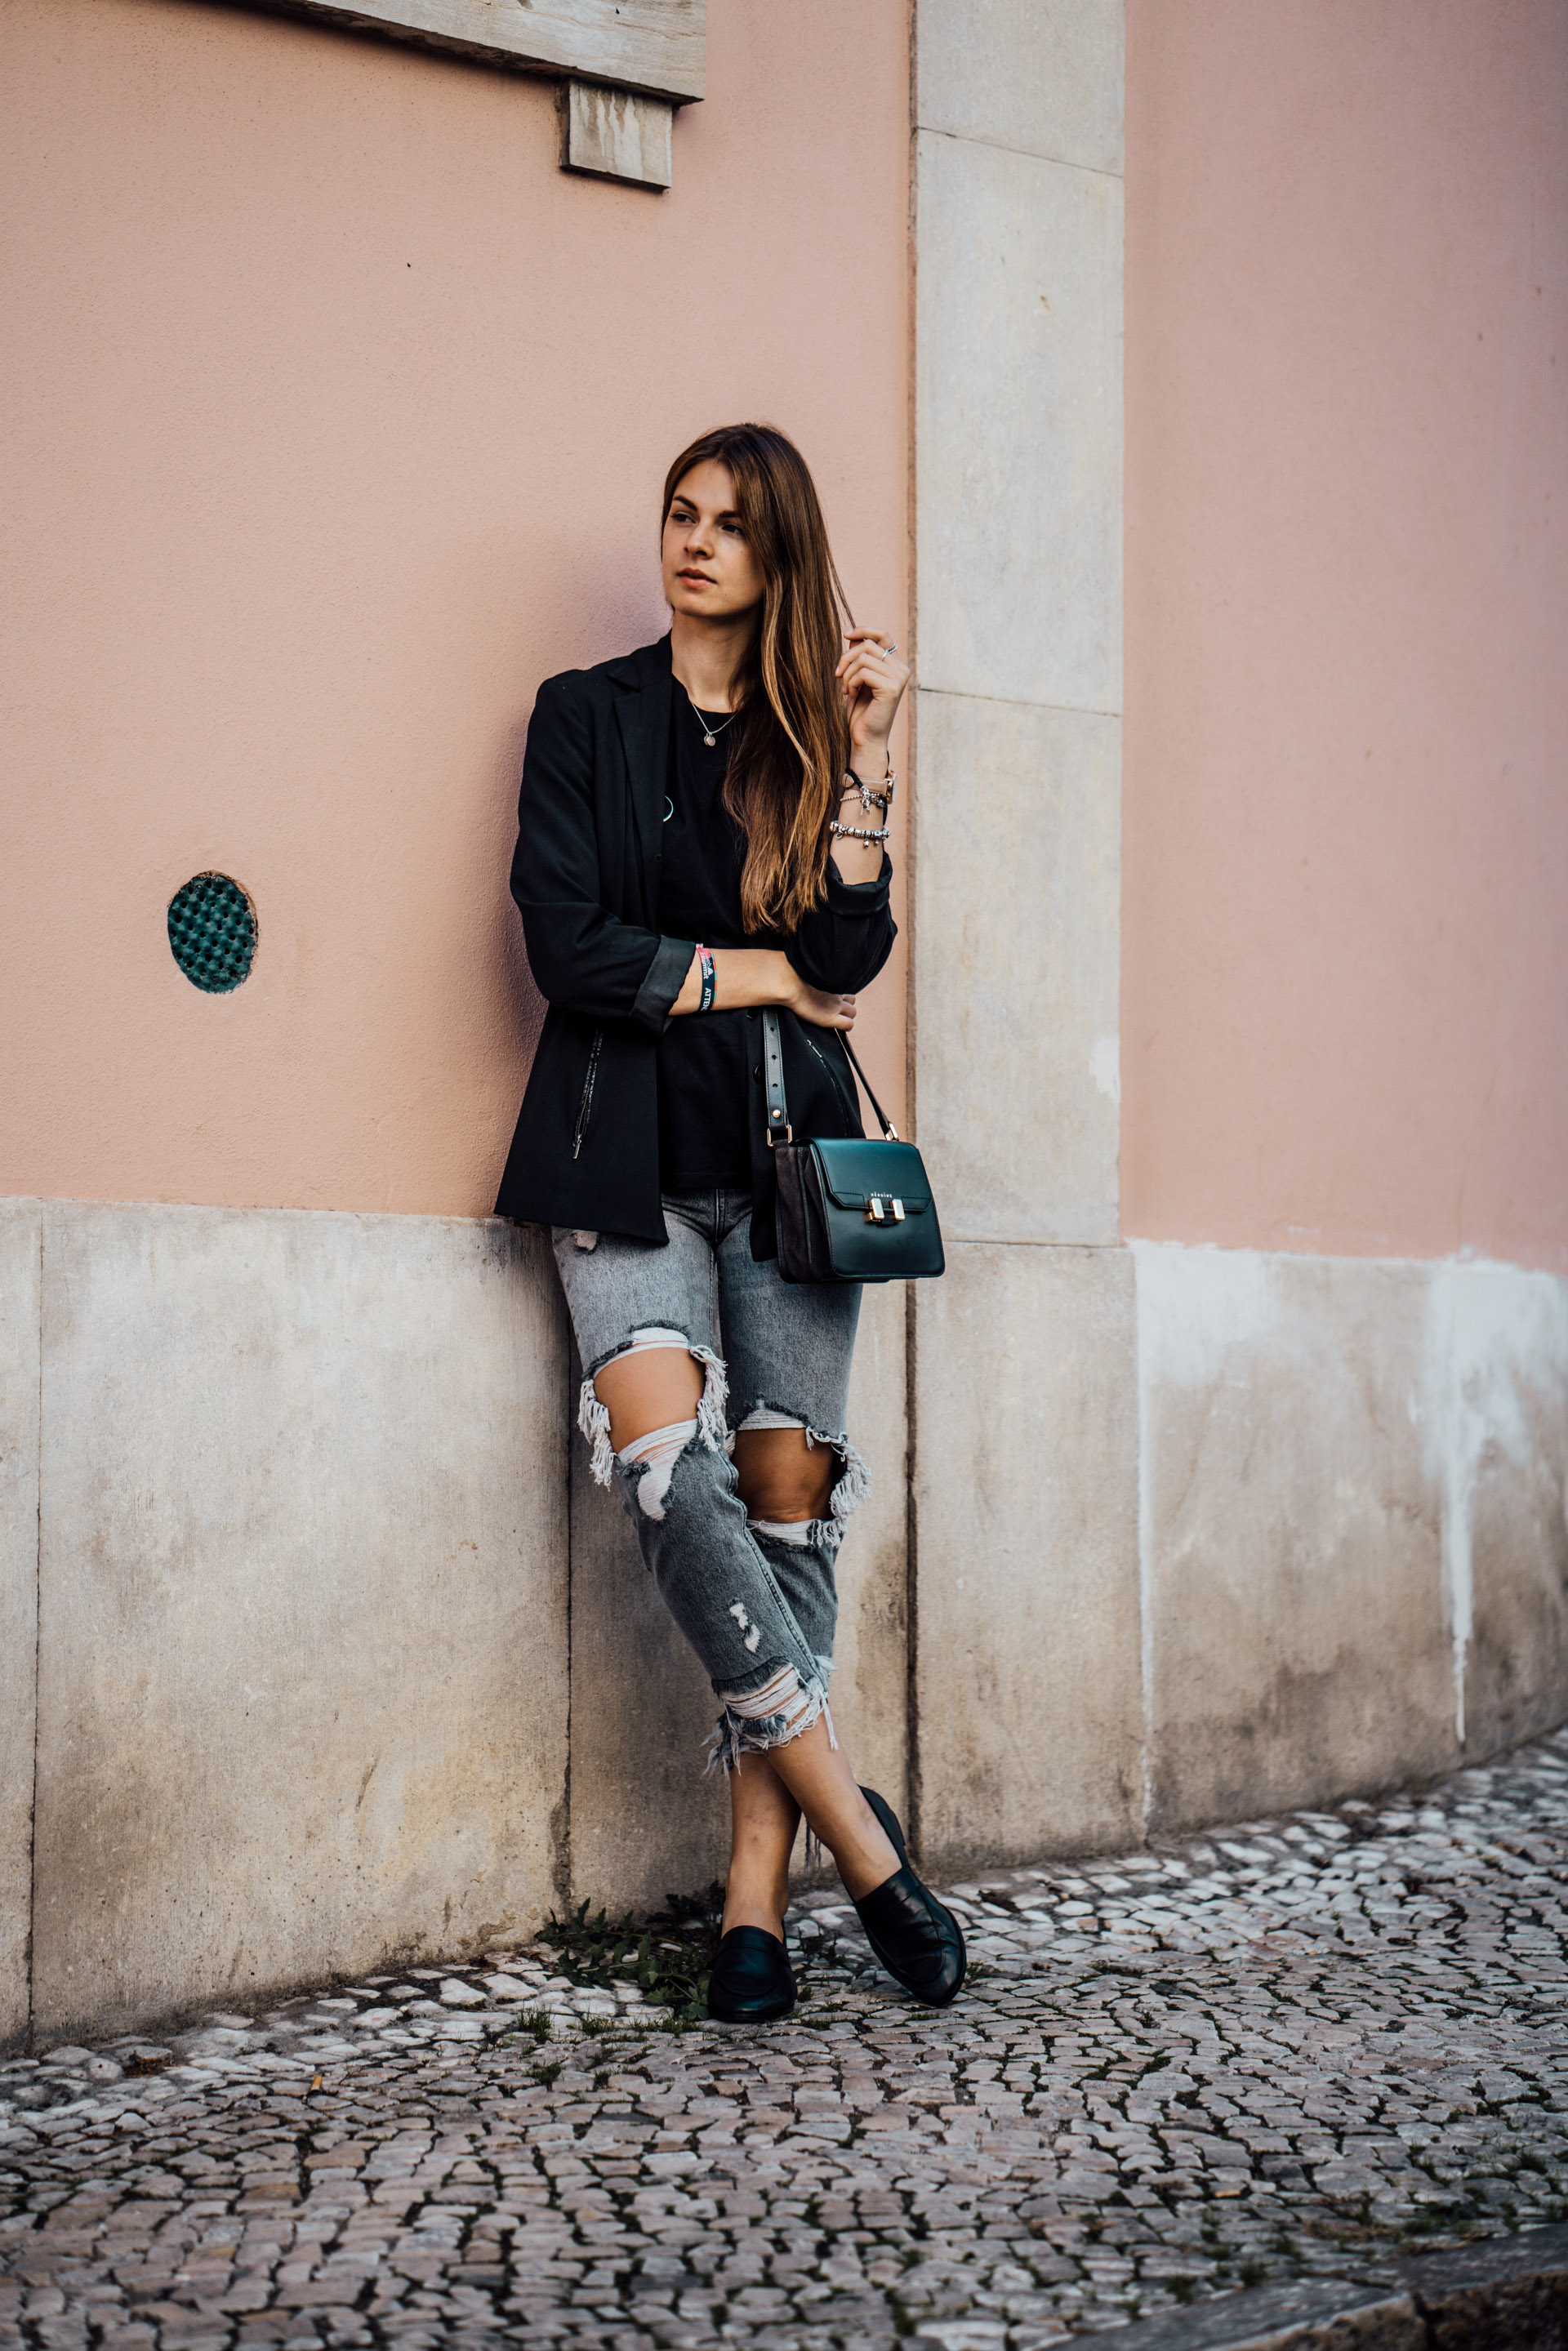 bd32f21b2014 Travel Outfit  exploring Lisbon in a casual chic outfit ...